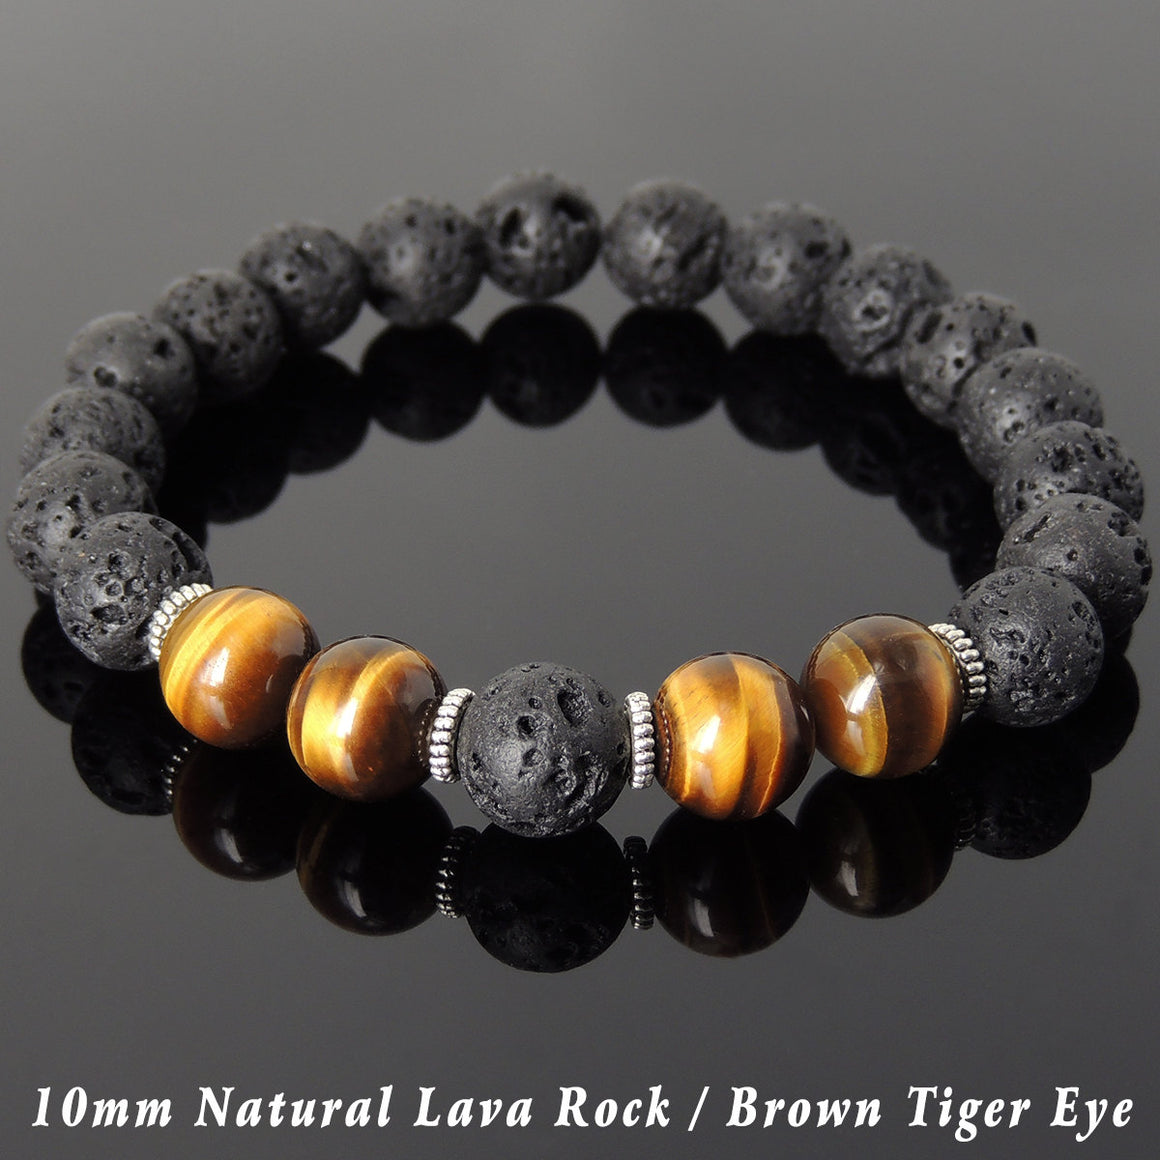 10mm Brown Tiger Eye & Lava Rock Healing Stone Bracelet with Tibetan Silver Spacers - Handmade by Gem & Silver TSB277